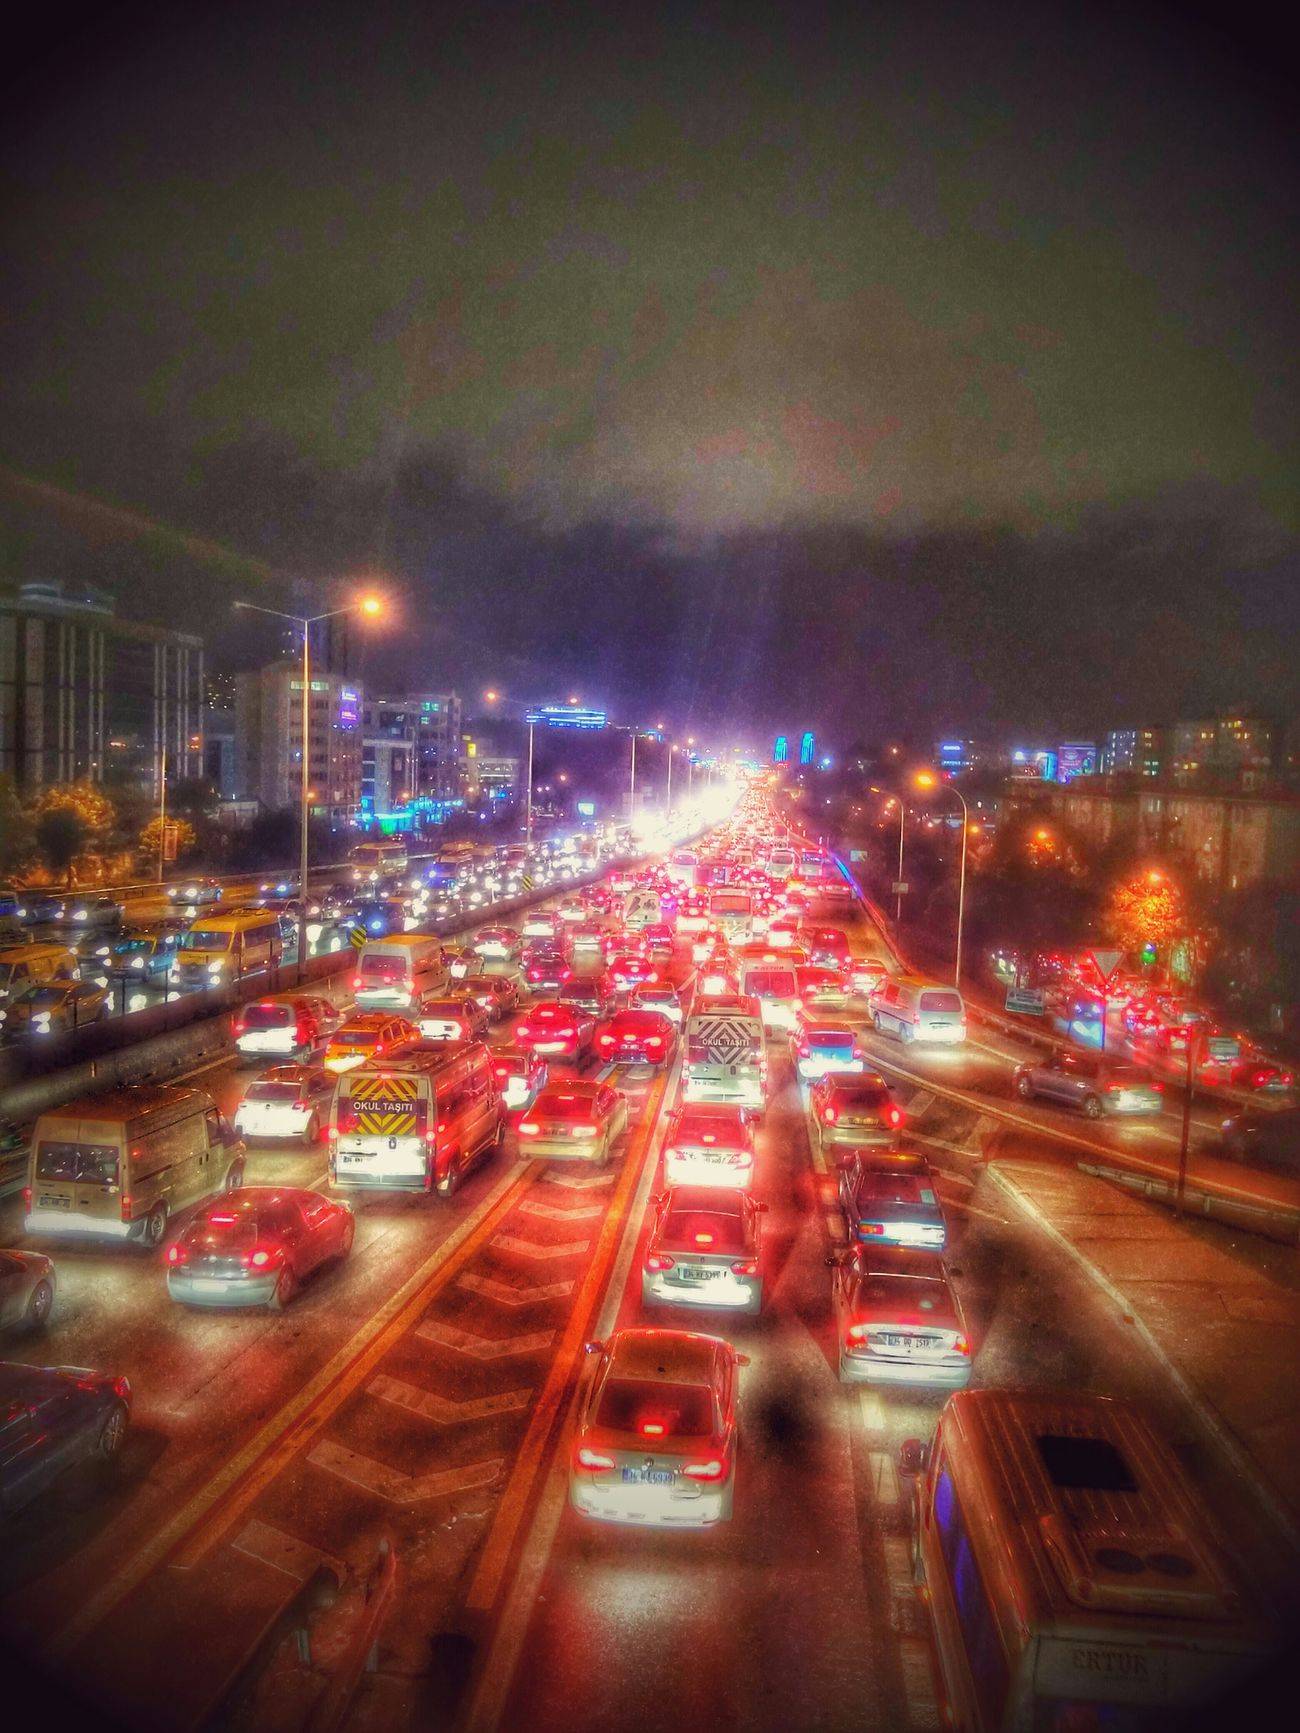 E5 Trafik Traffic Taking Photos Hanging Out Check This Out Relaxing